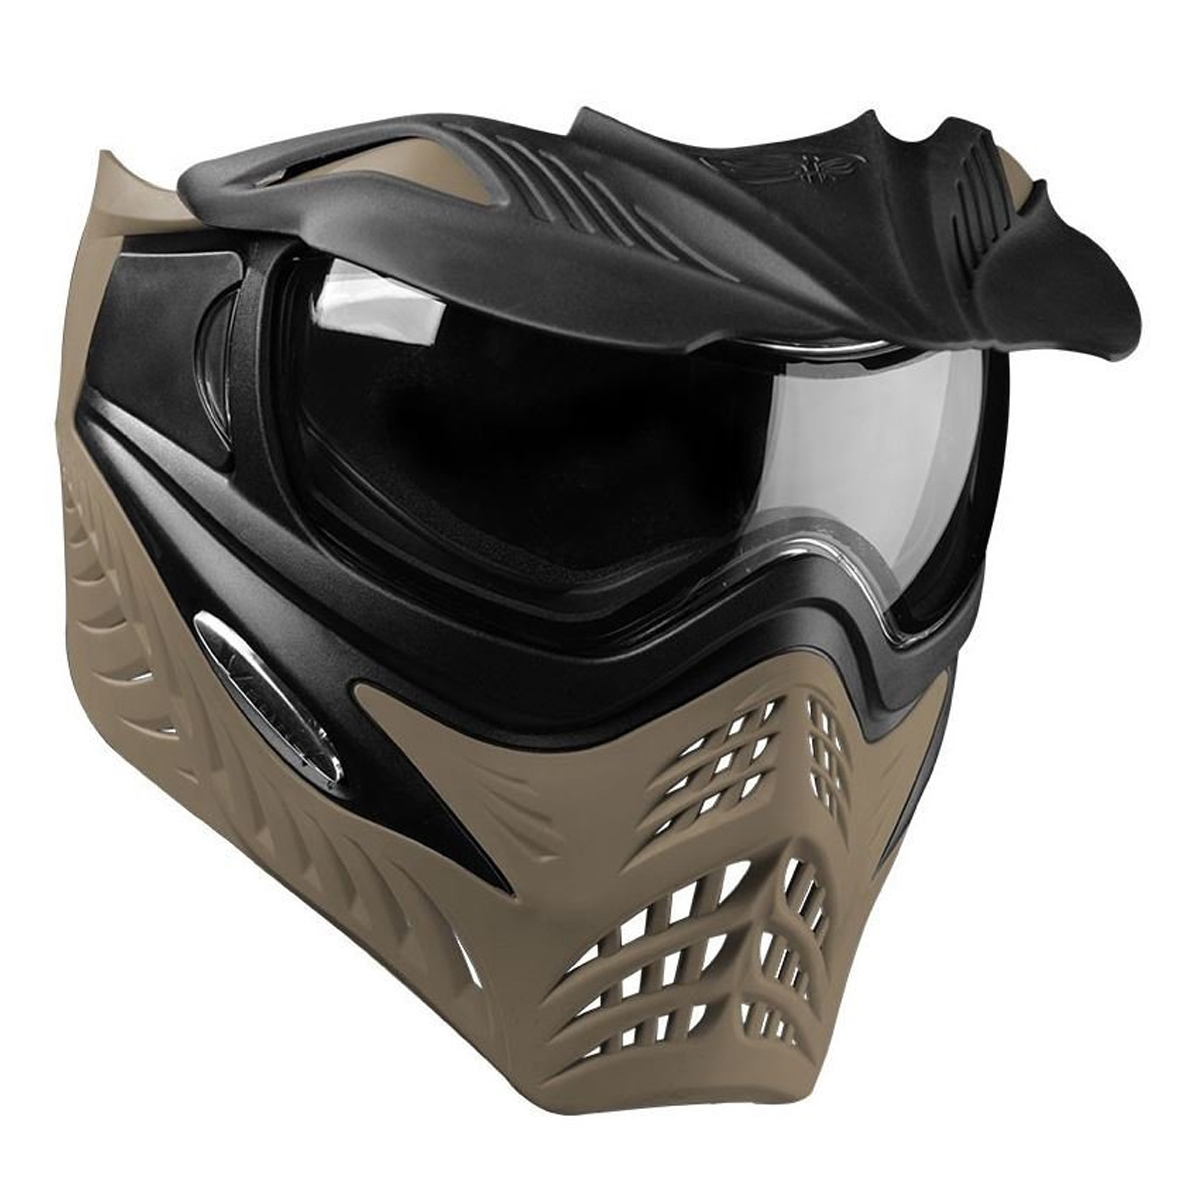 V-FORCE Grill Paintball Mask / Goggle - SF Jackal (Black on Taupe)